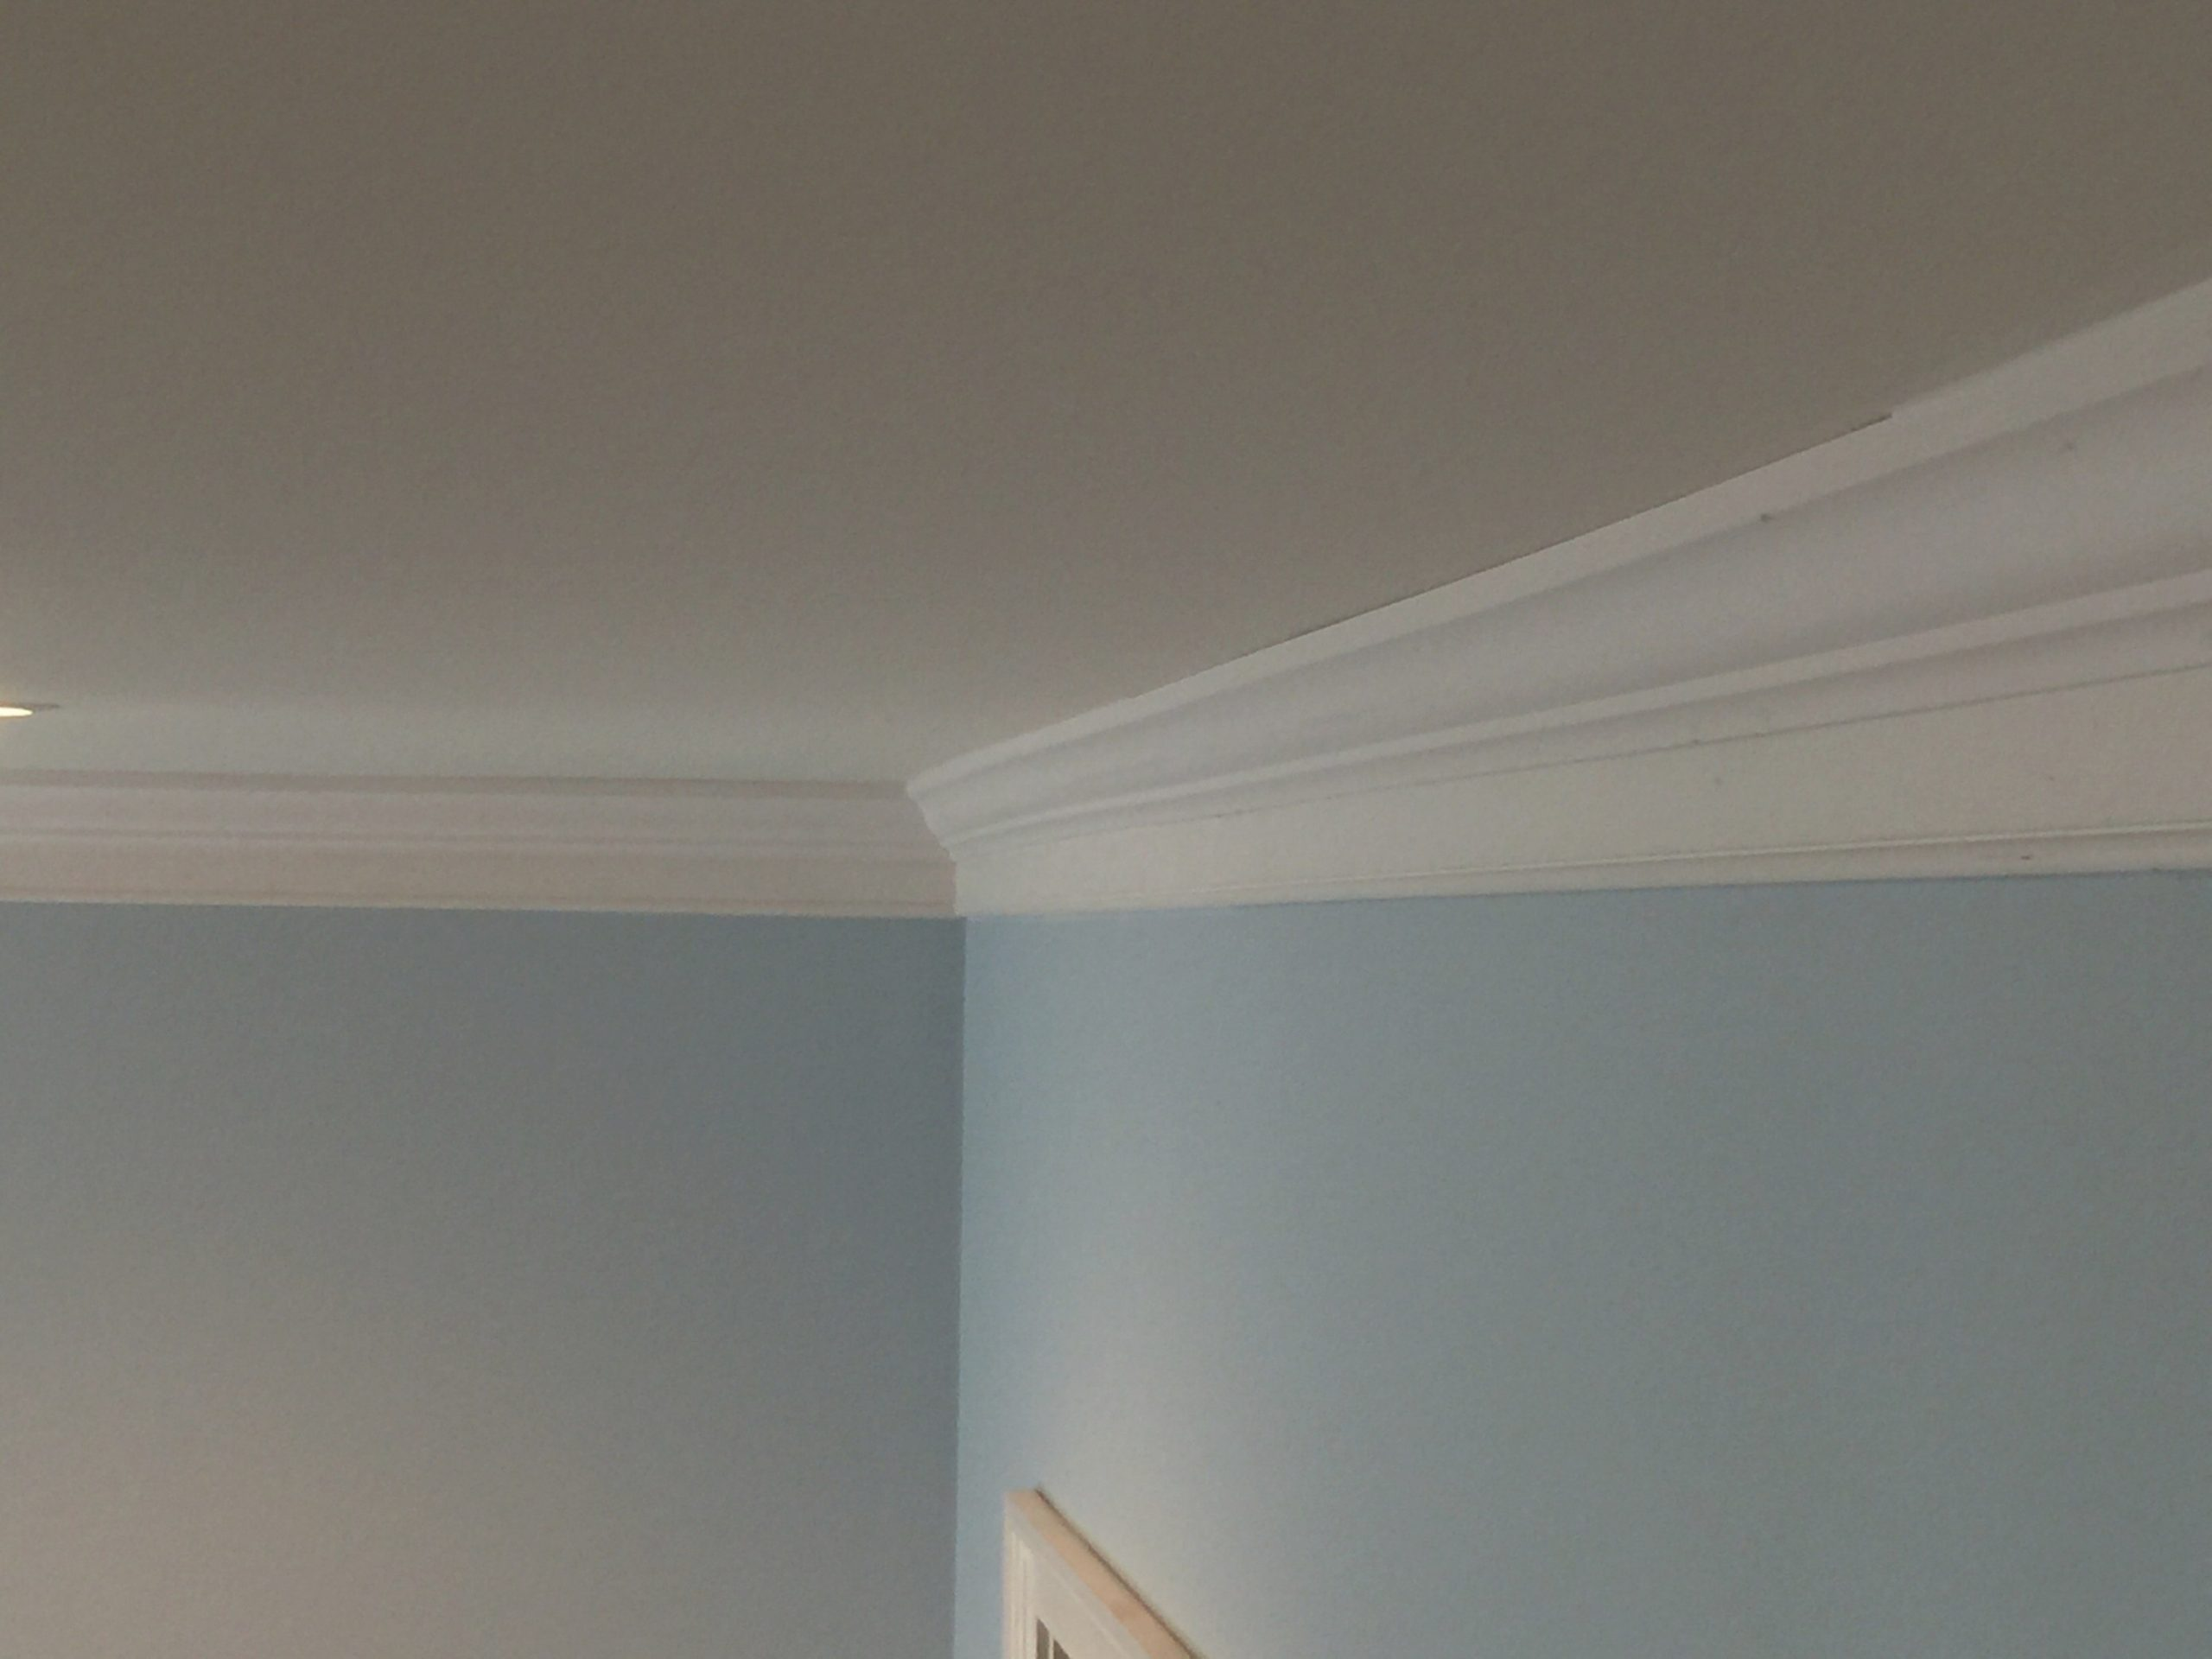 Two Piece Crown Molding - The Finishing Company within What Is Crown Molding